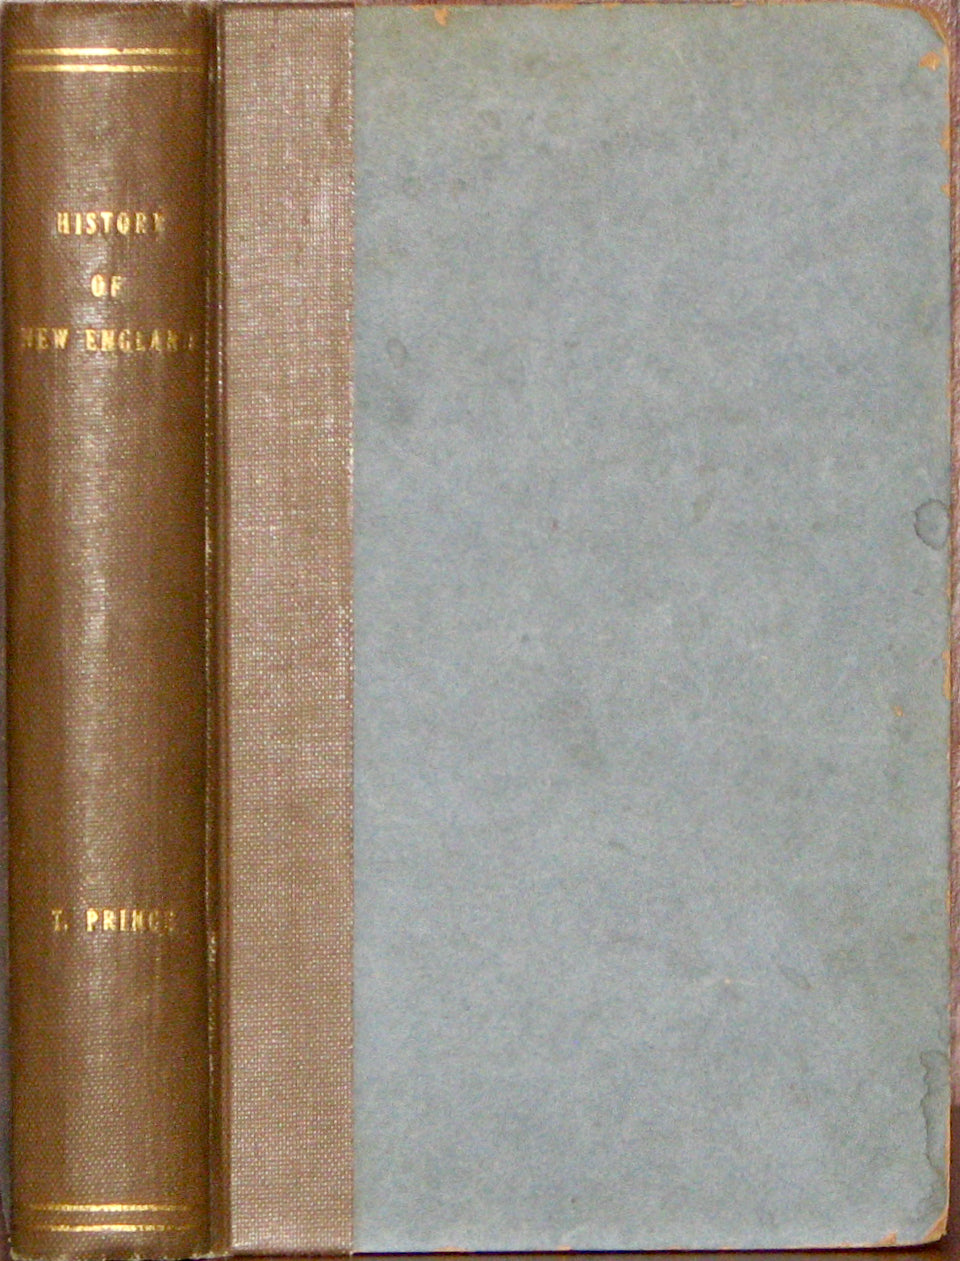 Prince, Thomas. A Chronological History of New-England, in the form of Annals: being A Summary and exact Account of the most material Transactions and Occurrences relating to this Country